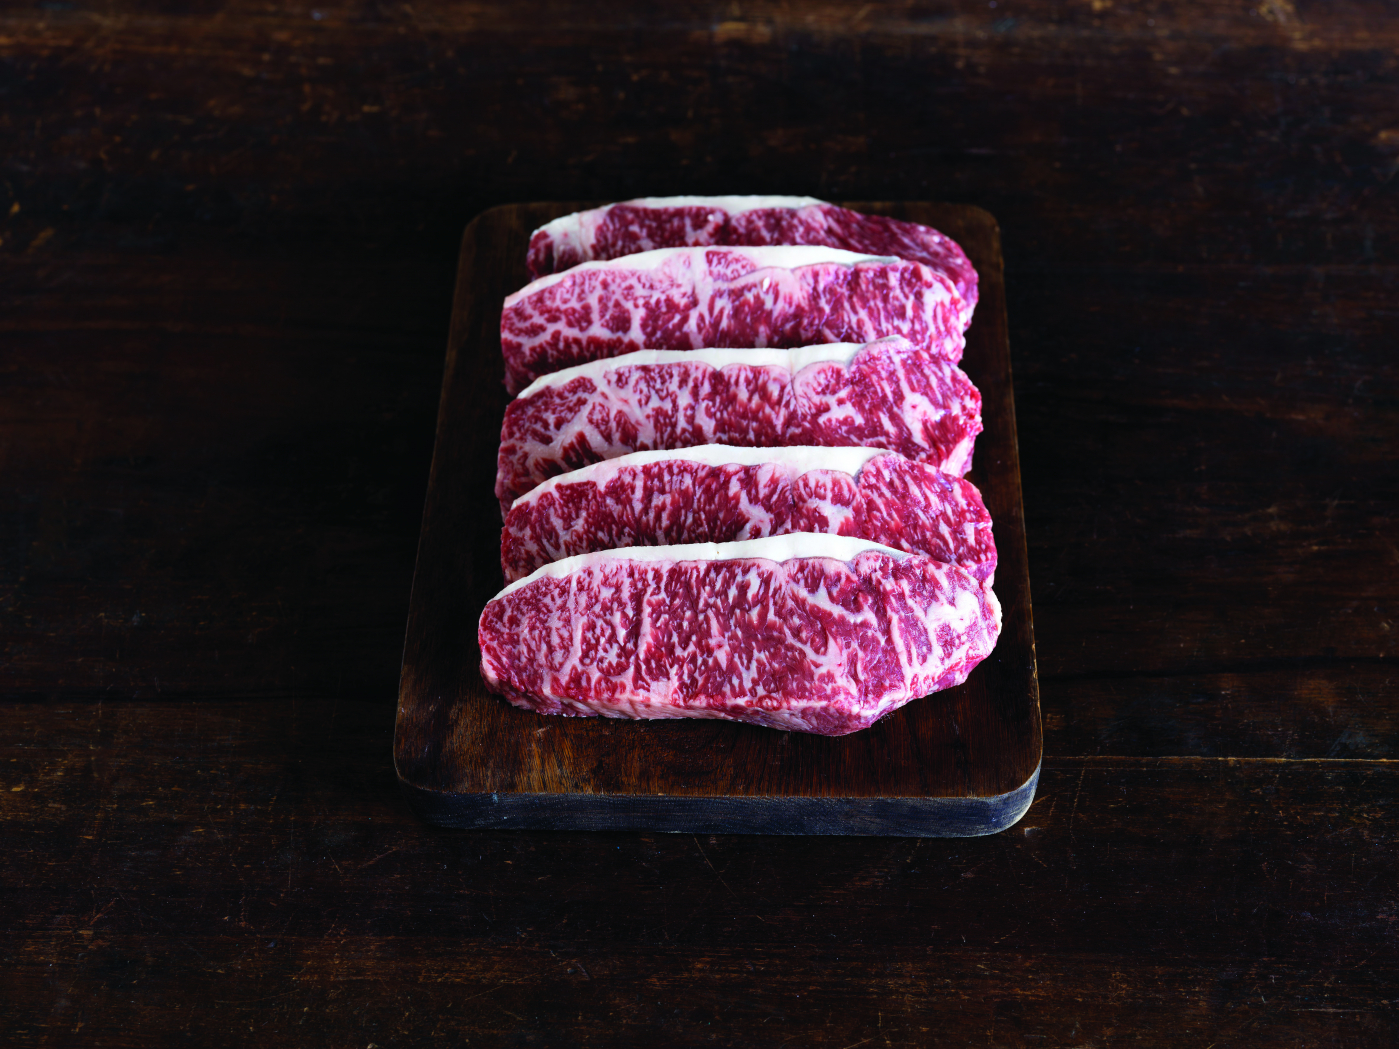 Classic Fine Foods launch Westholme Wagyu beef - 1